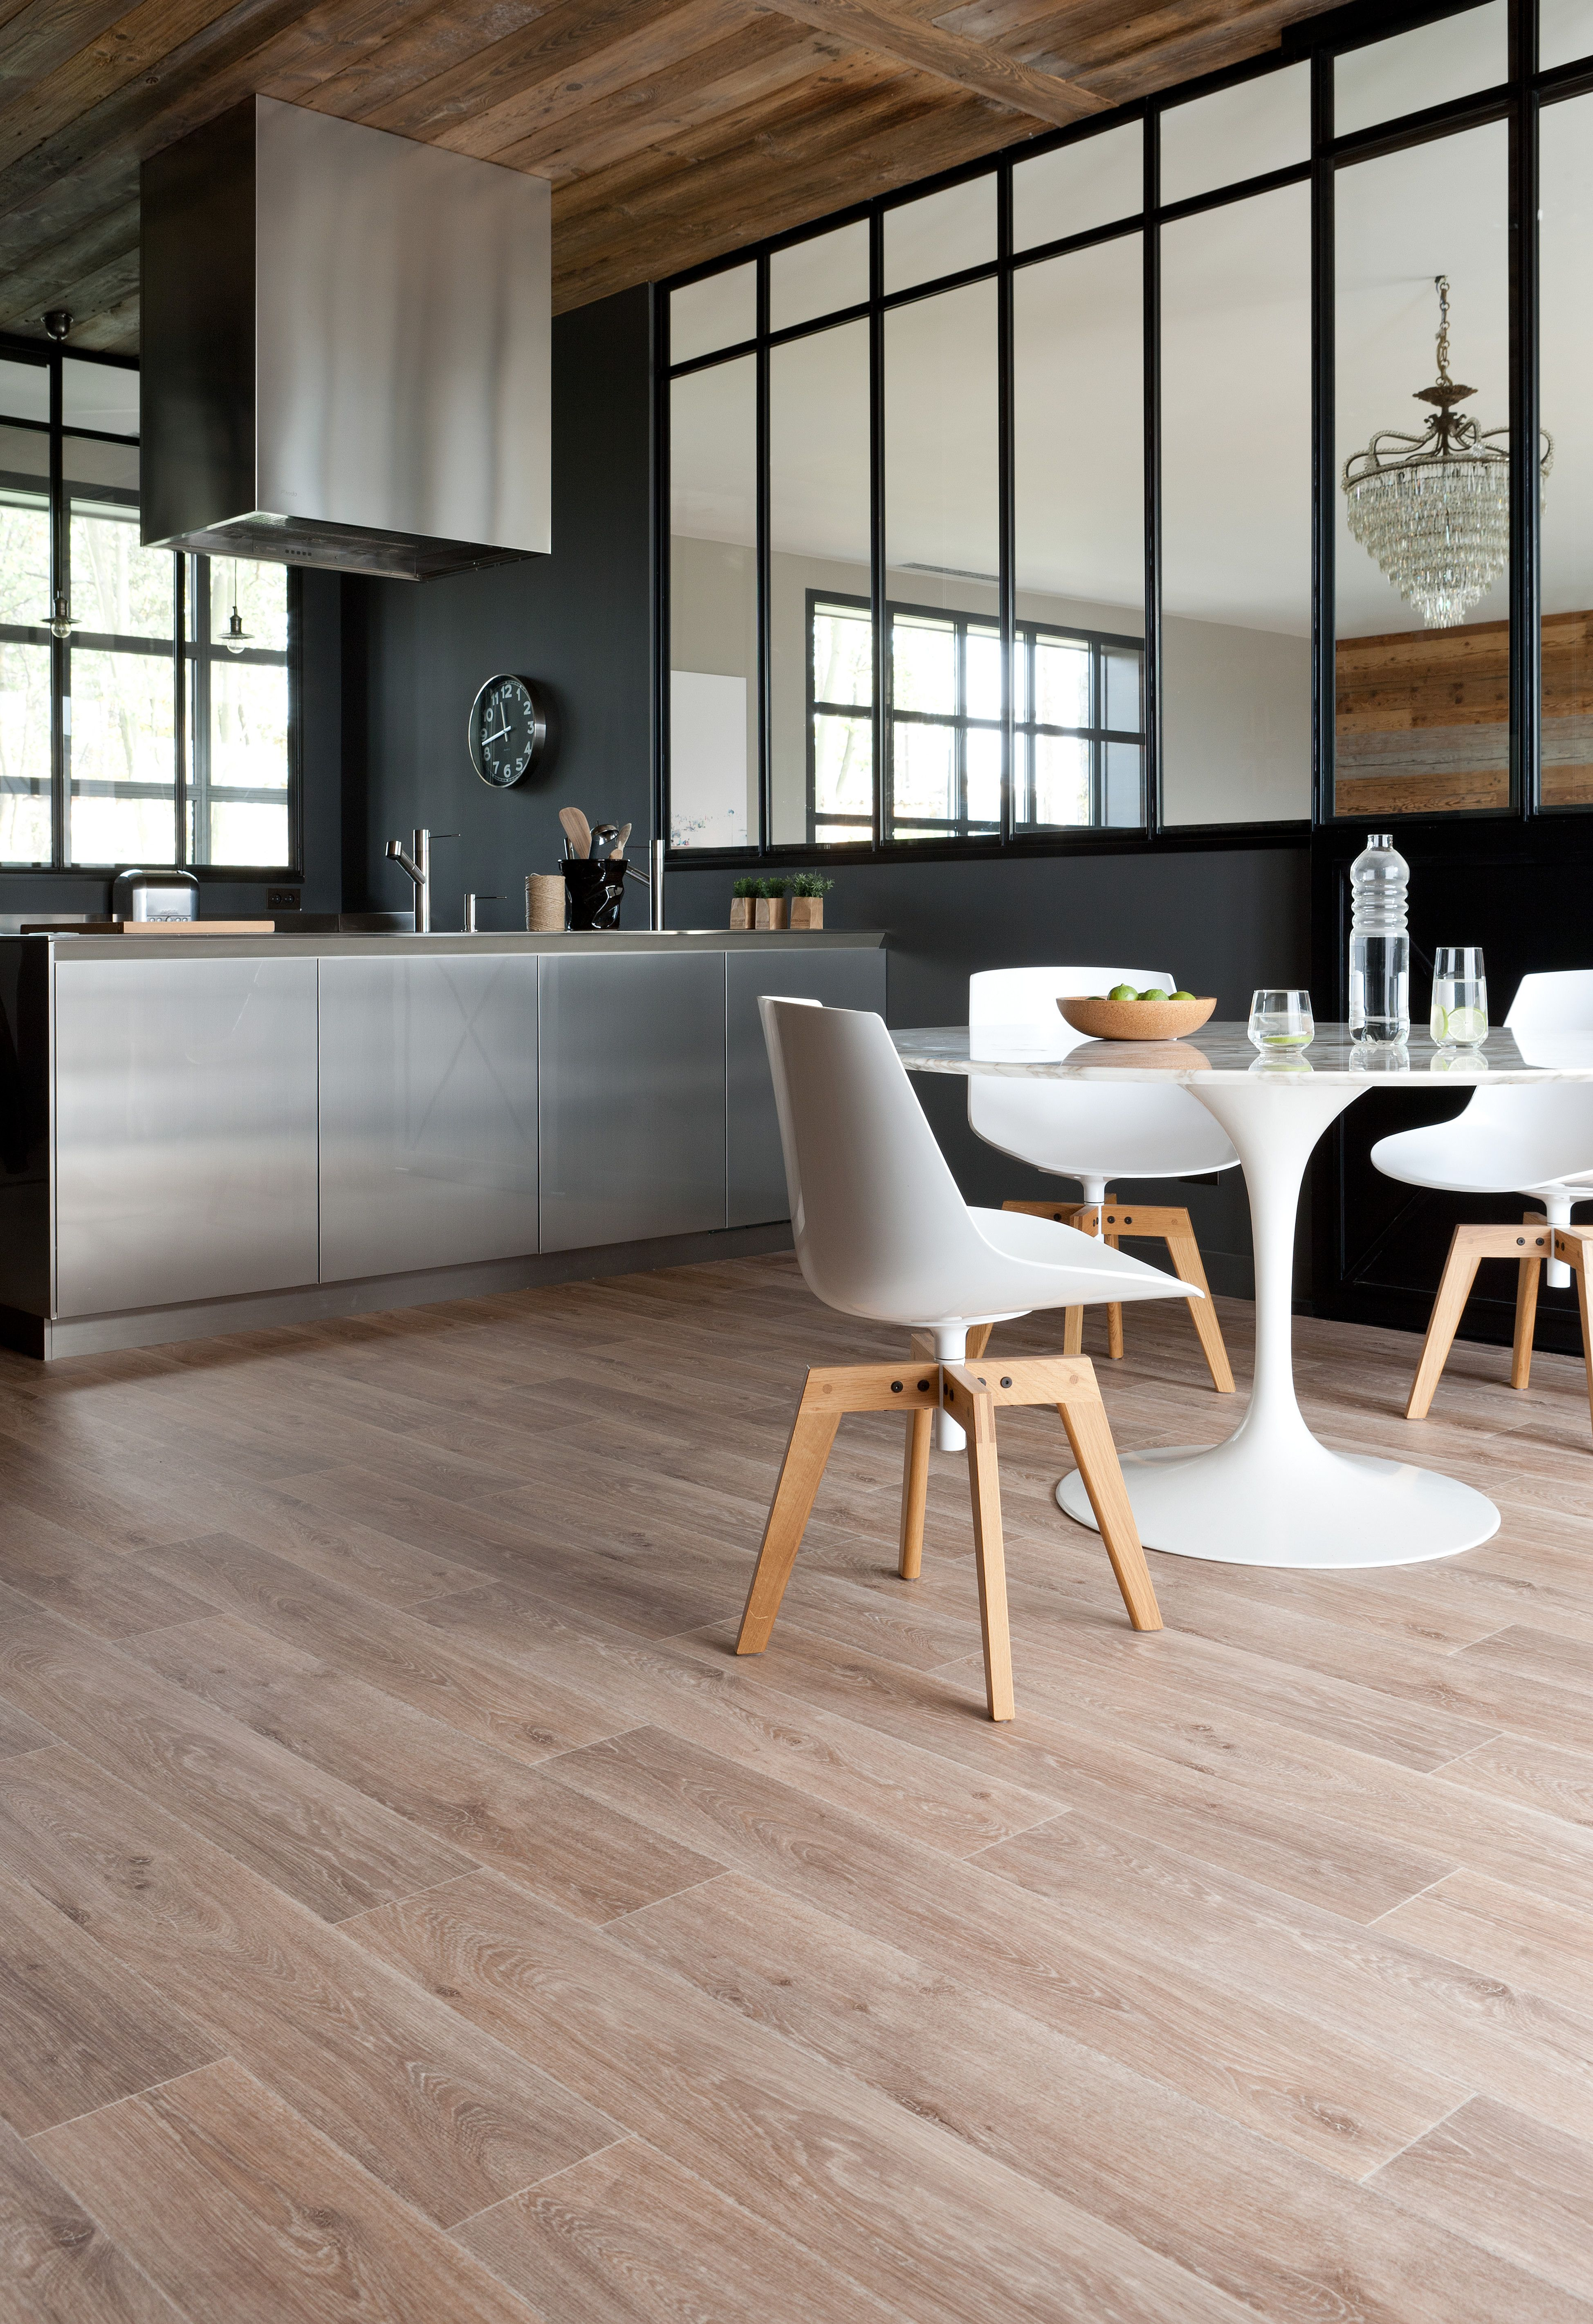 Texline Essence  Noma Blond #Gerflor #Design #Flooring